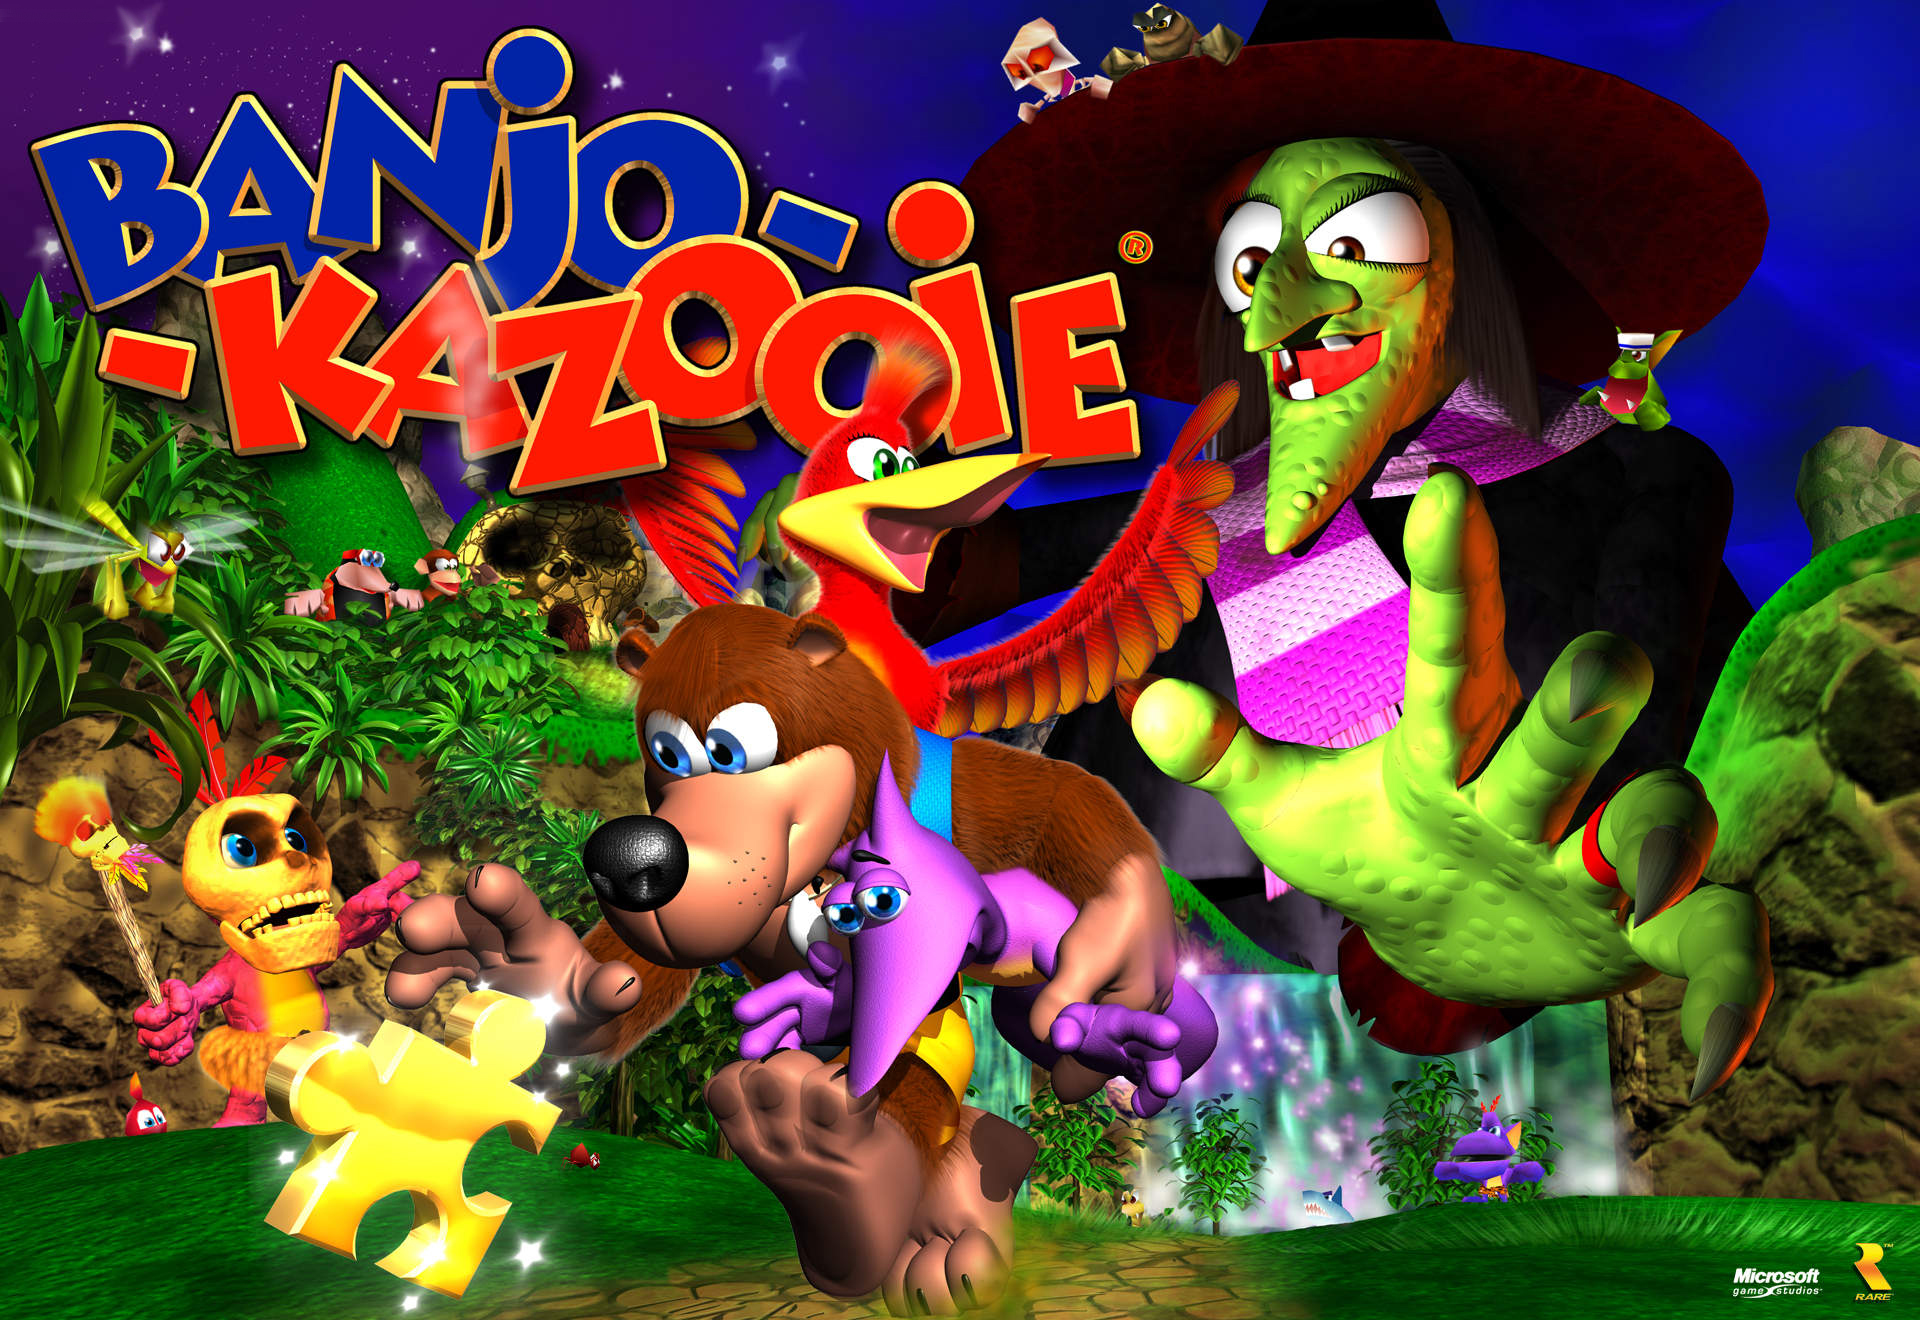 The Best Games of the Late '90s